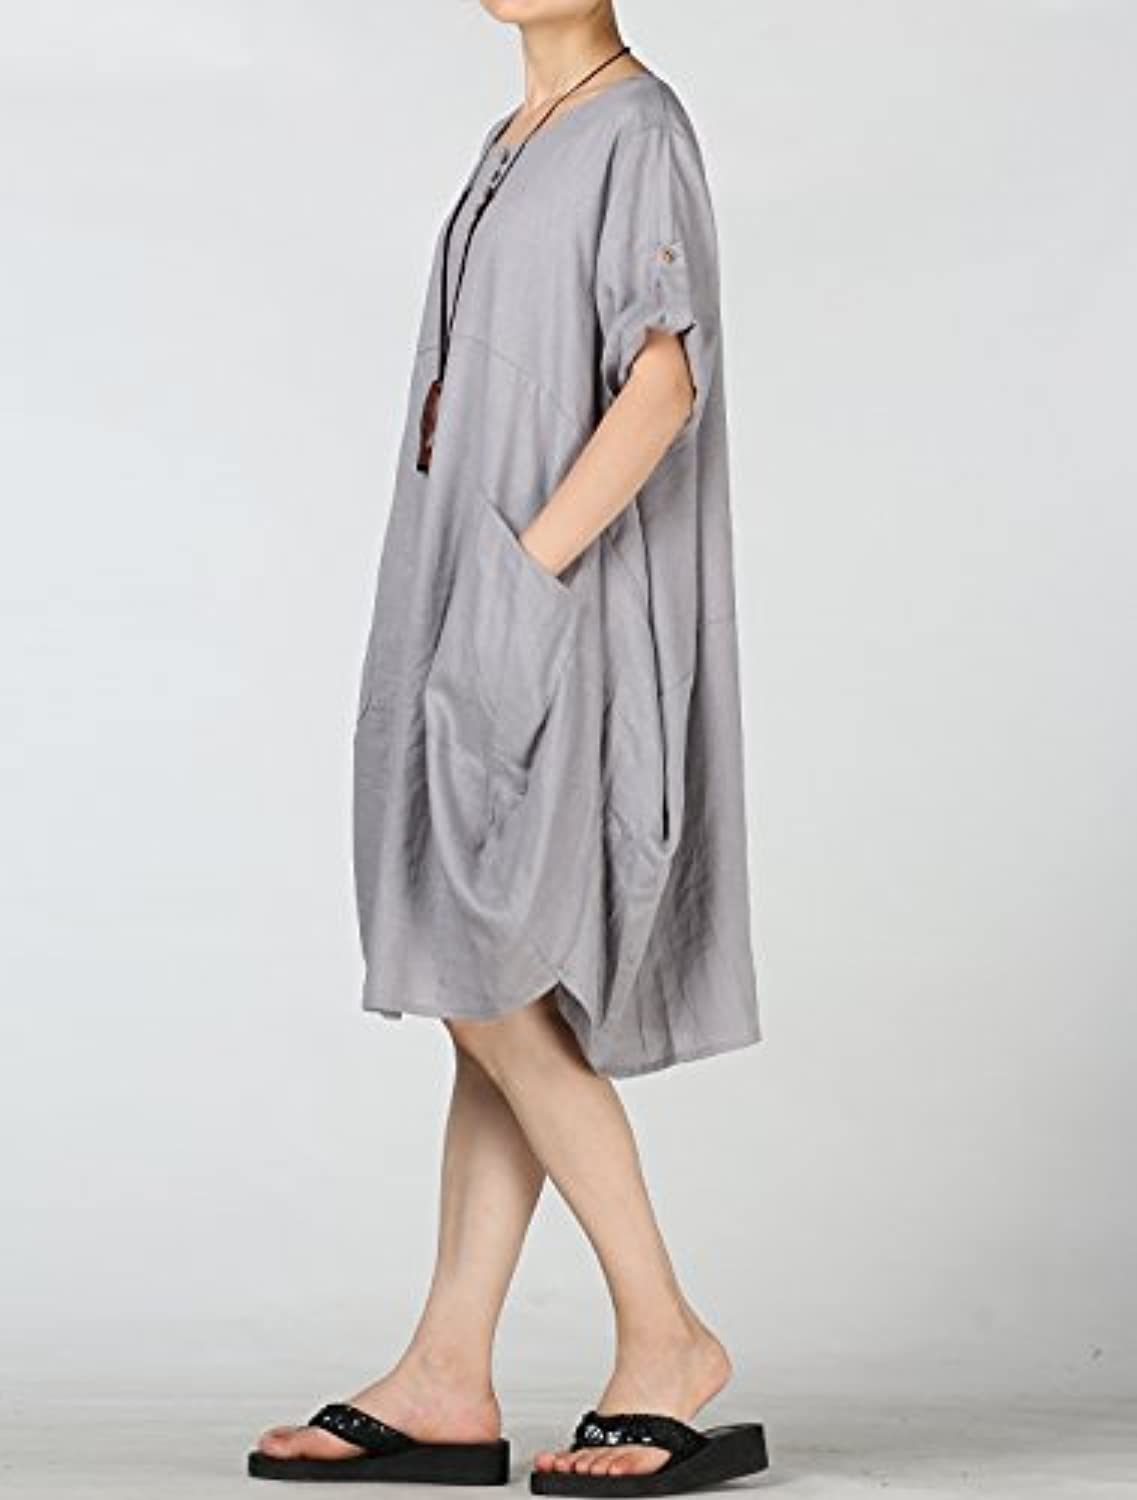 Women's Cotton Linen Dresses Plus Size Summer Roll-up Sleeve Baggy Sundress with Pockets